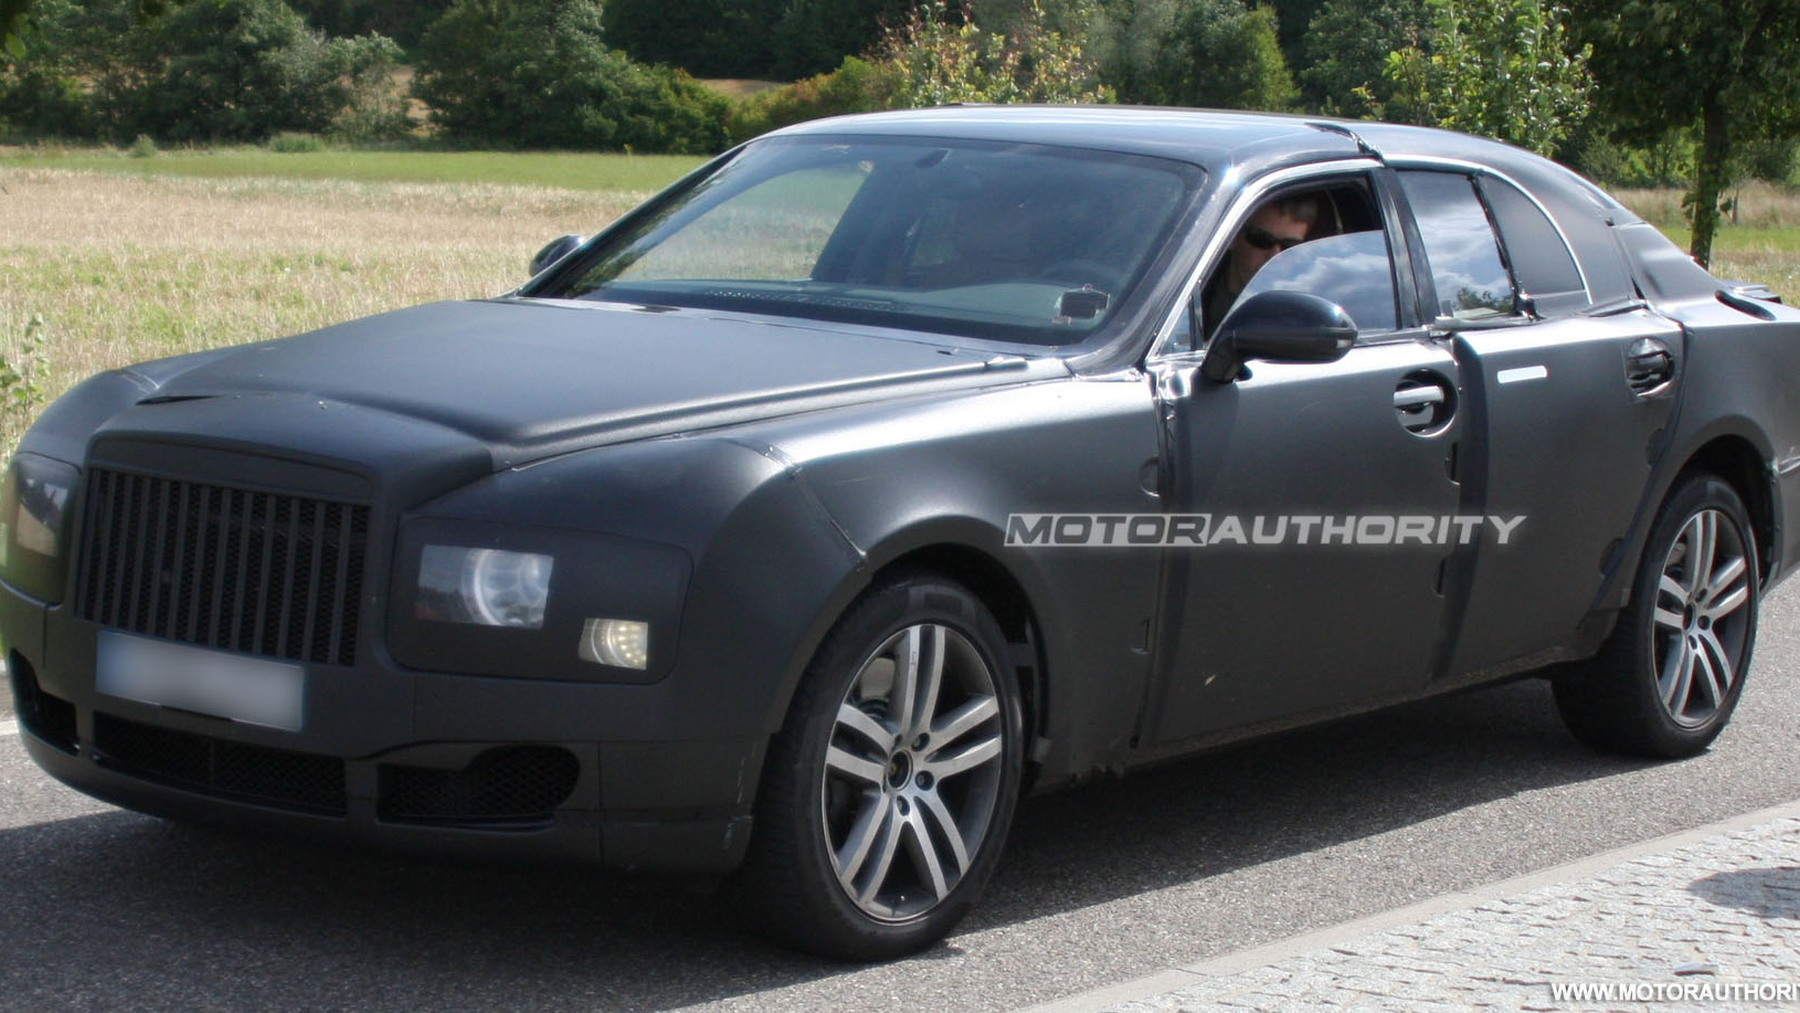 2010 grand bentley arnage replacement spy shots july 002